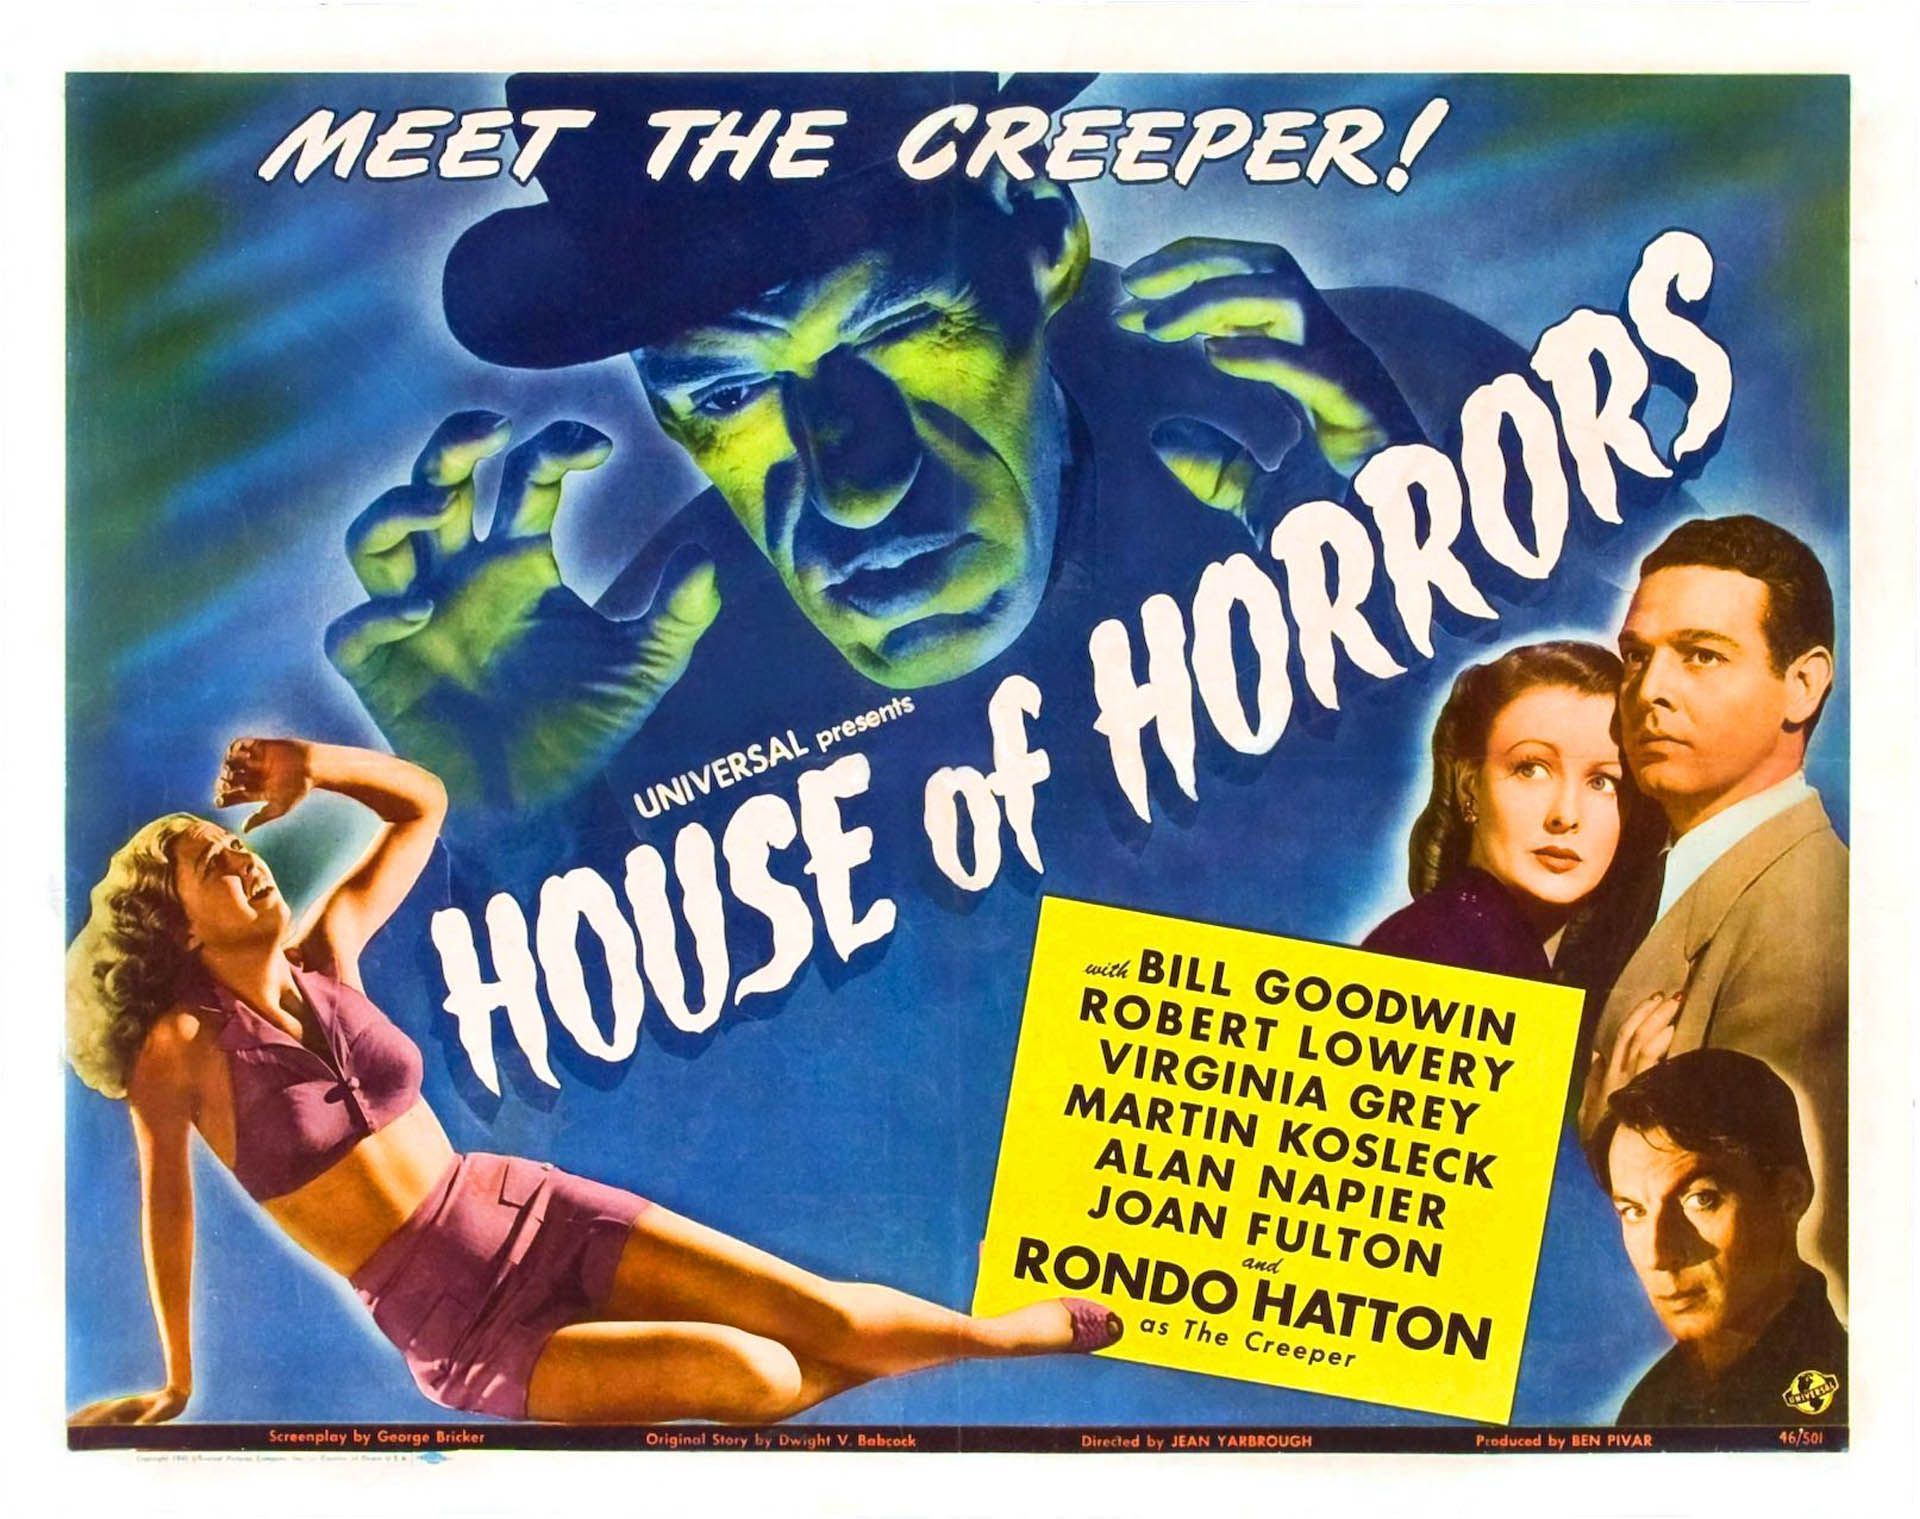 House Of Horrors Vintage 1940s Movie Posters Wallpaper Image Horror House Movie Posters Classic Horror Movies